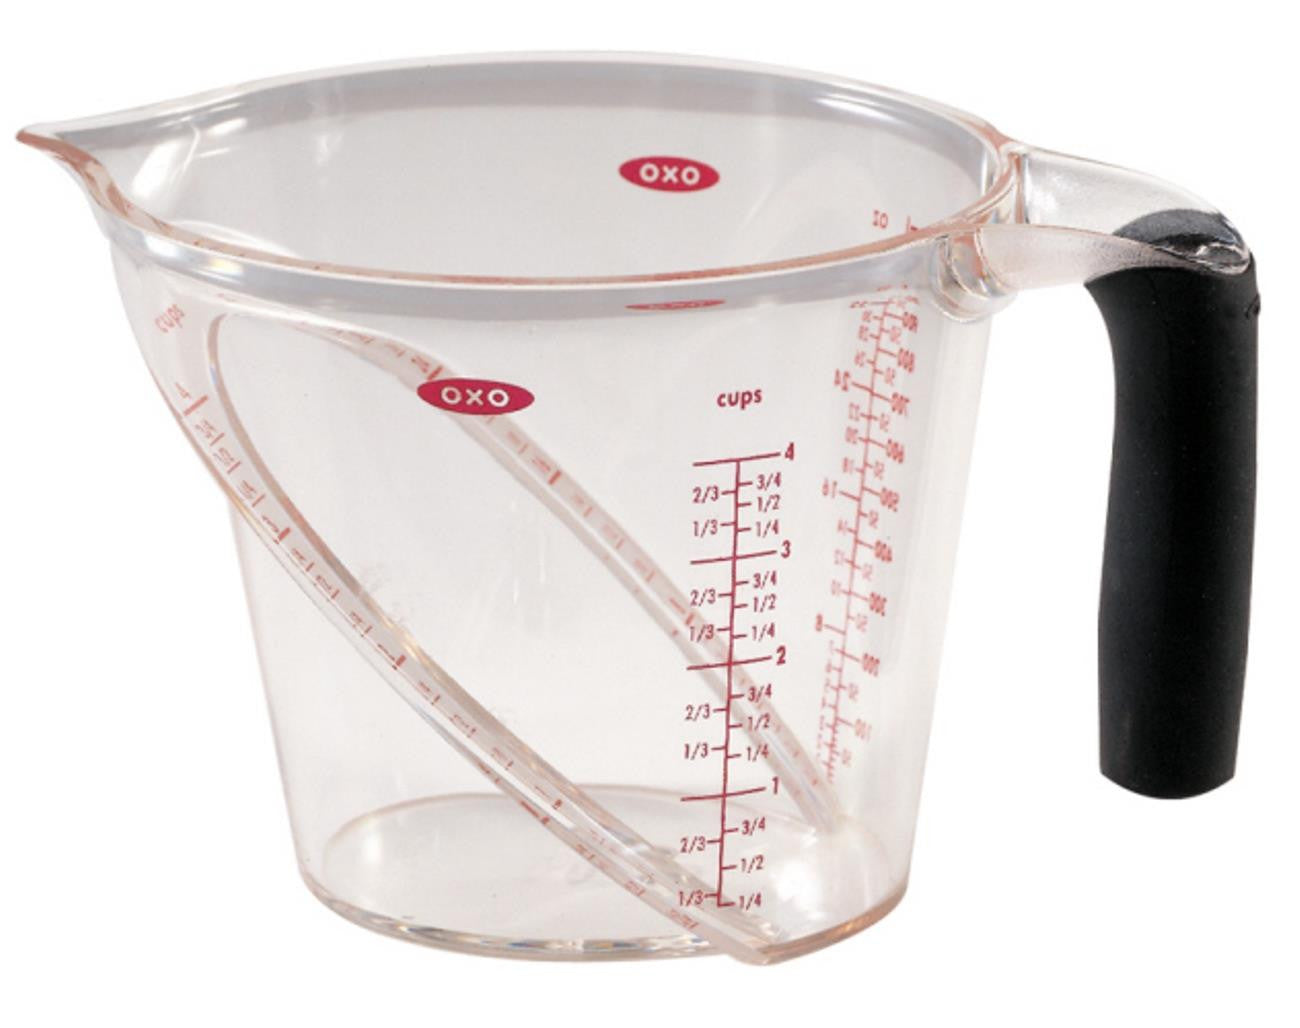 OXO Good Grips Angled Measuring Cup 1 cup